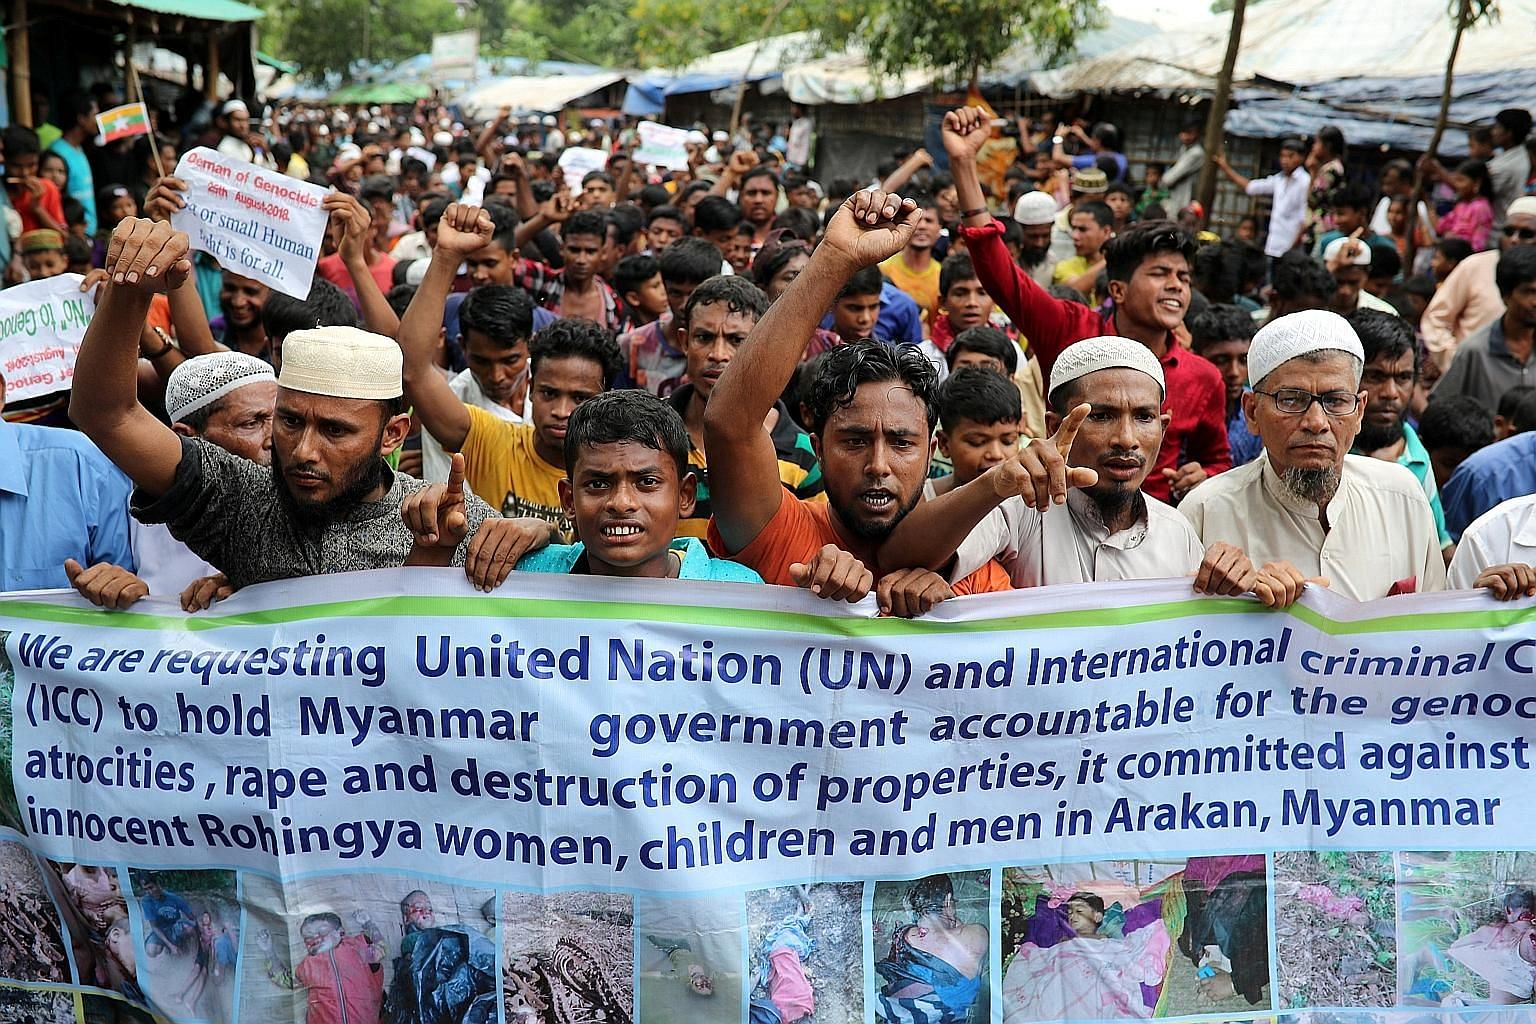 Angry Rohingya refugees yesterday marked the anniversary of their flight across the Myanmar border to Cox's Bazar in Bangladesh.